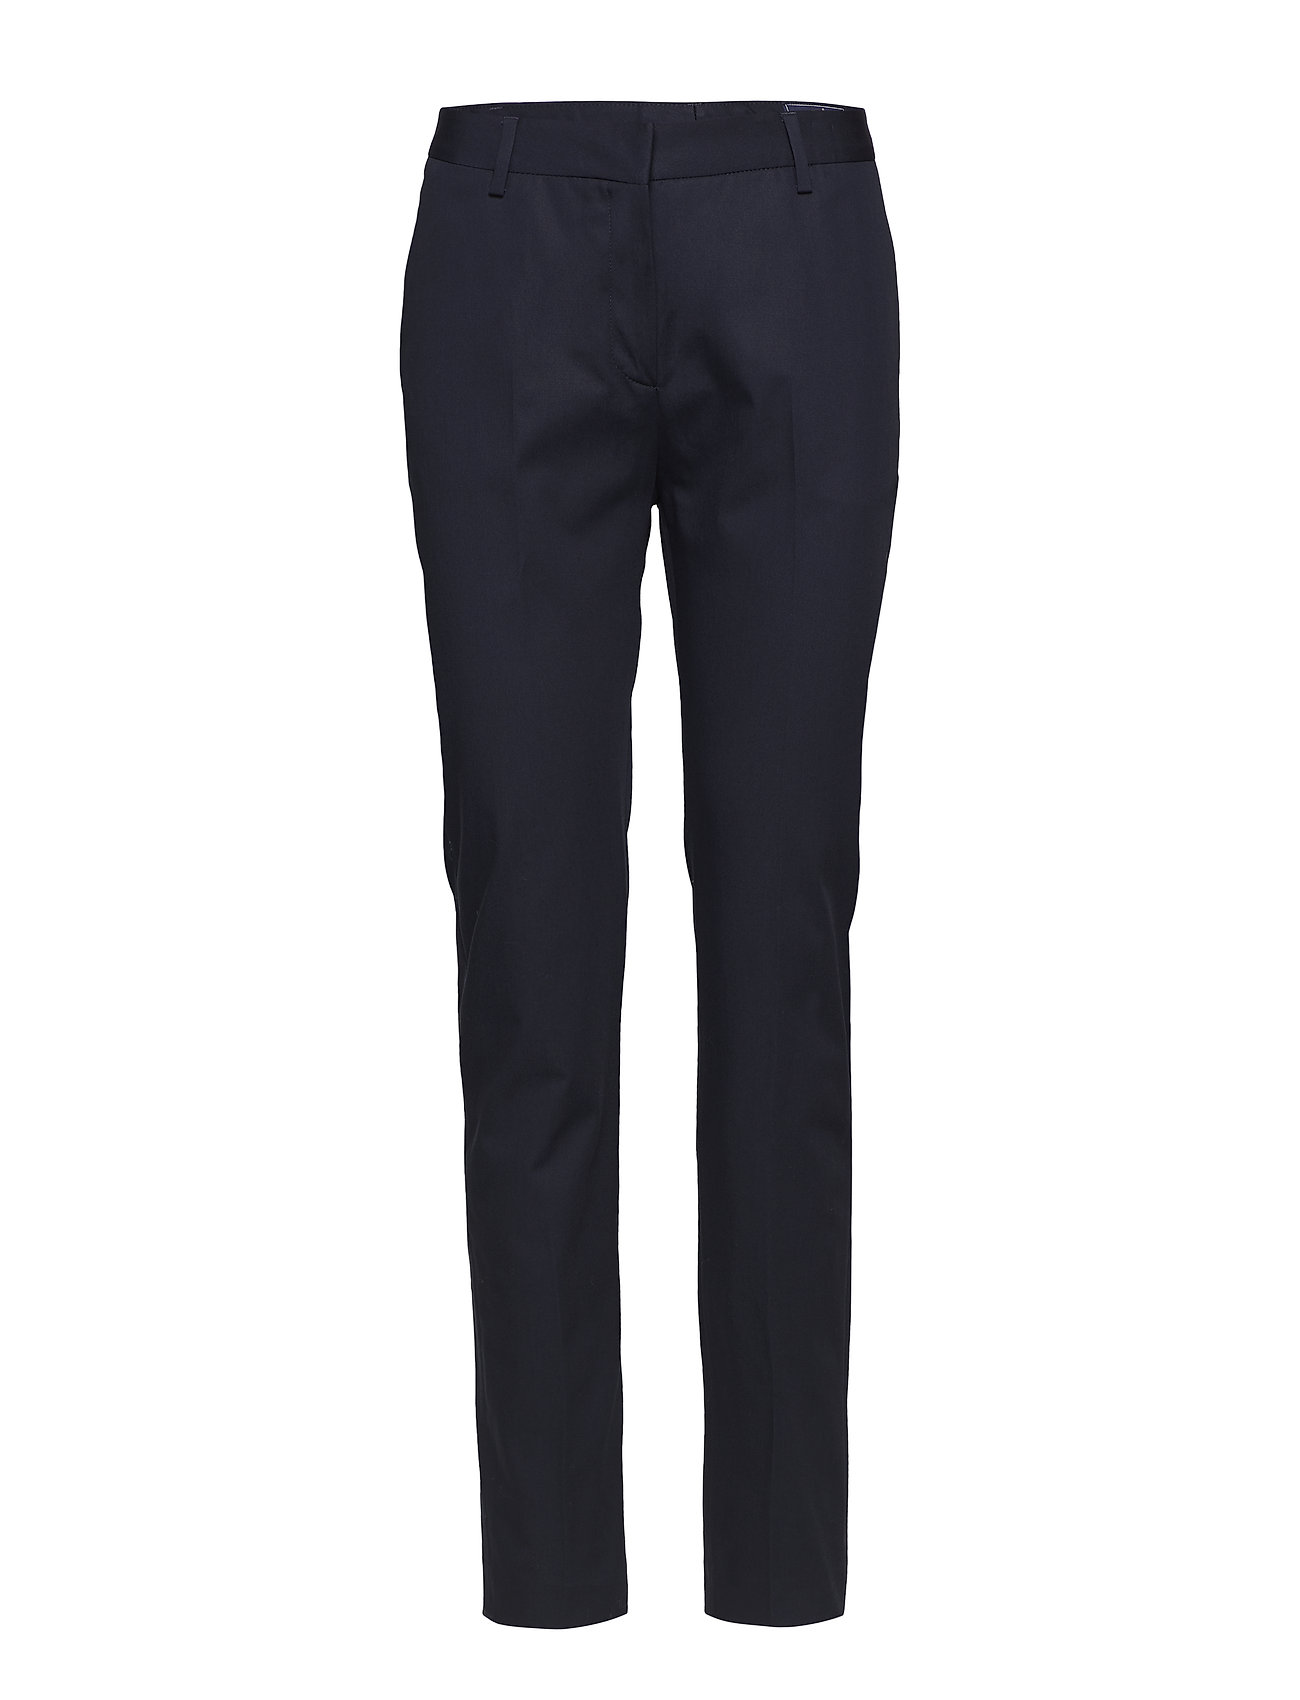 Lexington Clothing Blake Narrow Leg Pants